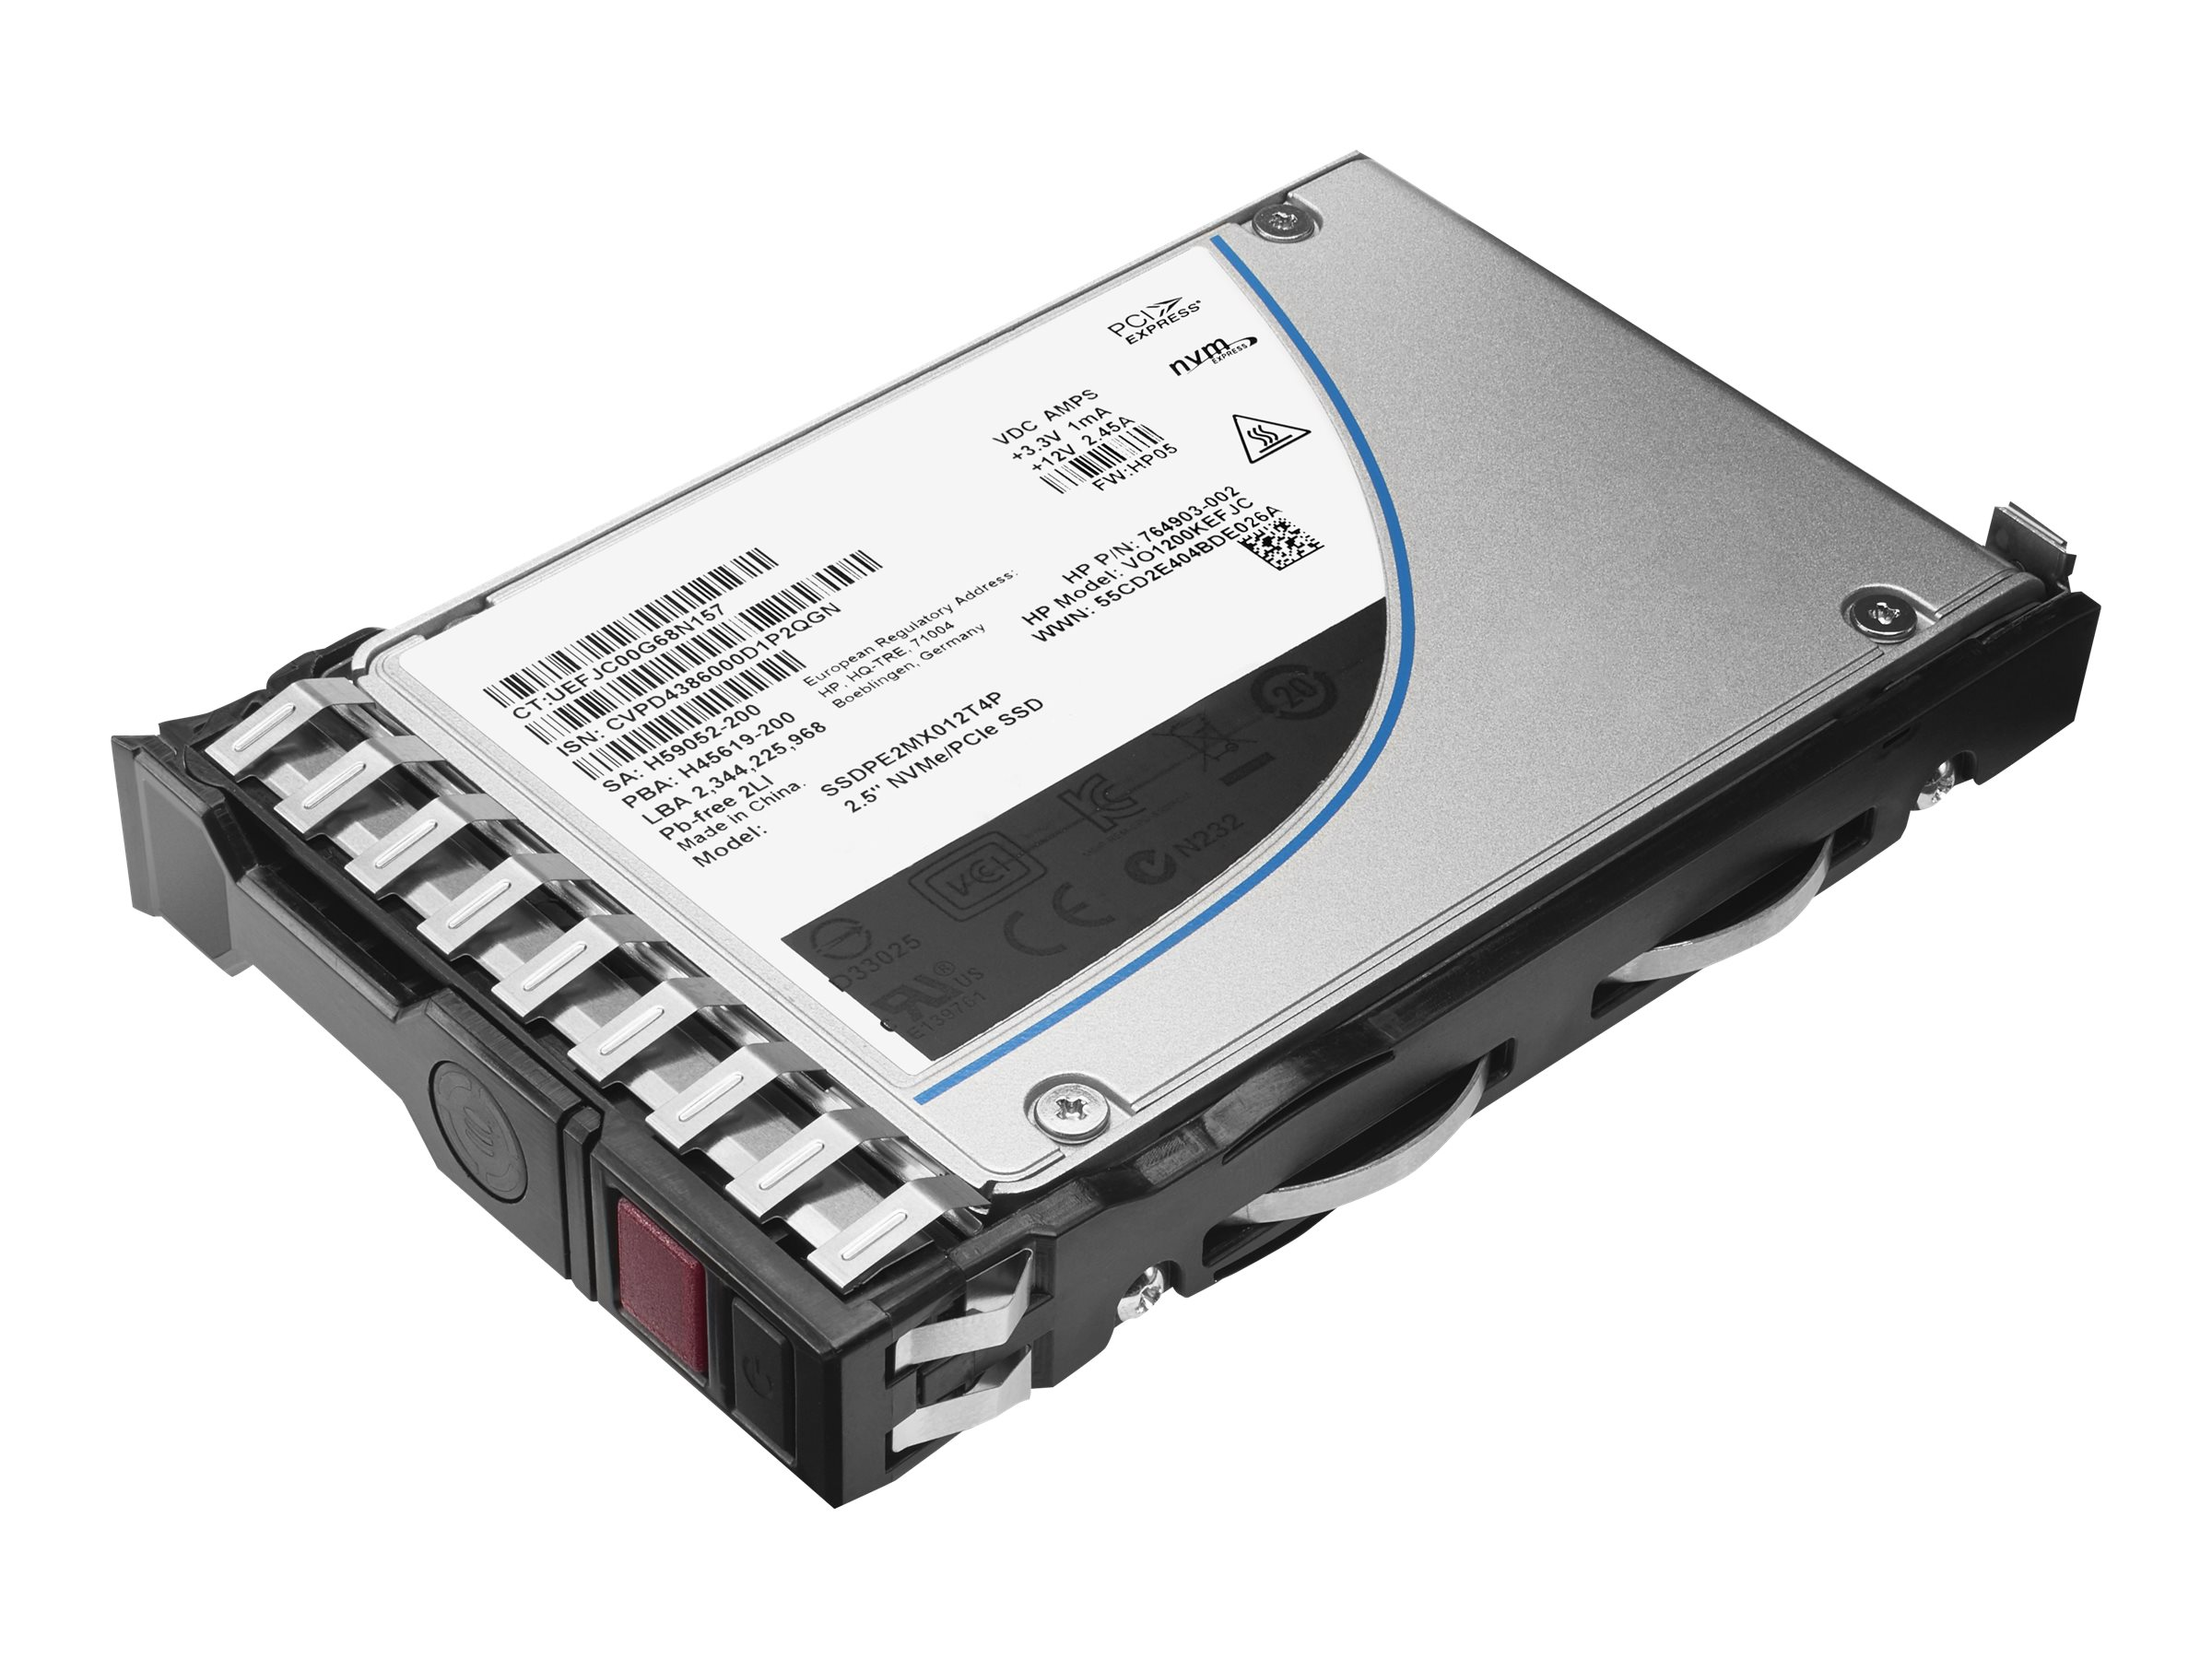 HPE 1.6TB SATA 6Gb s Mixed Use-2 SFF 2.5 SC Solid State Drive